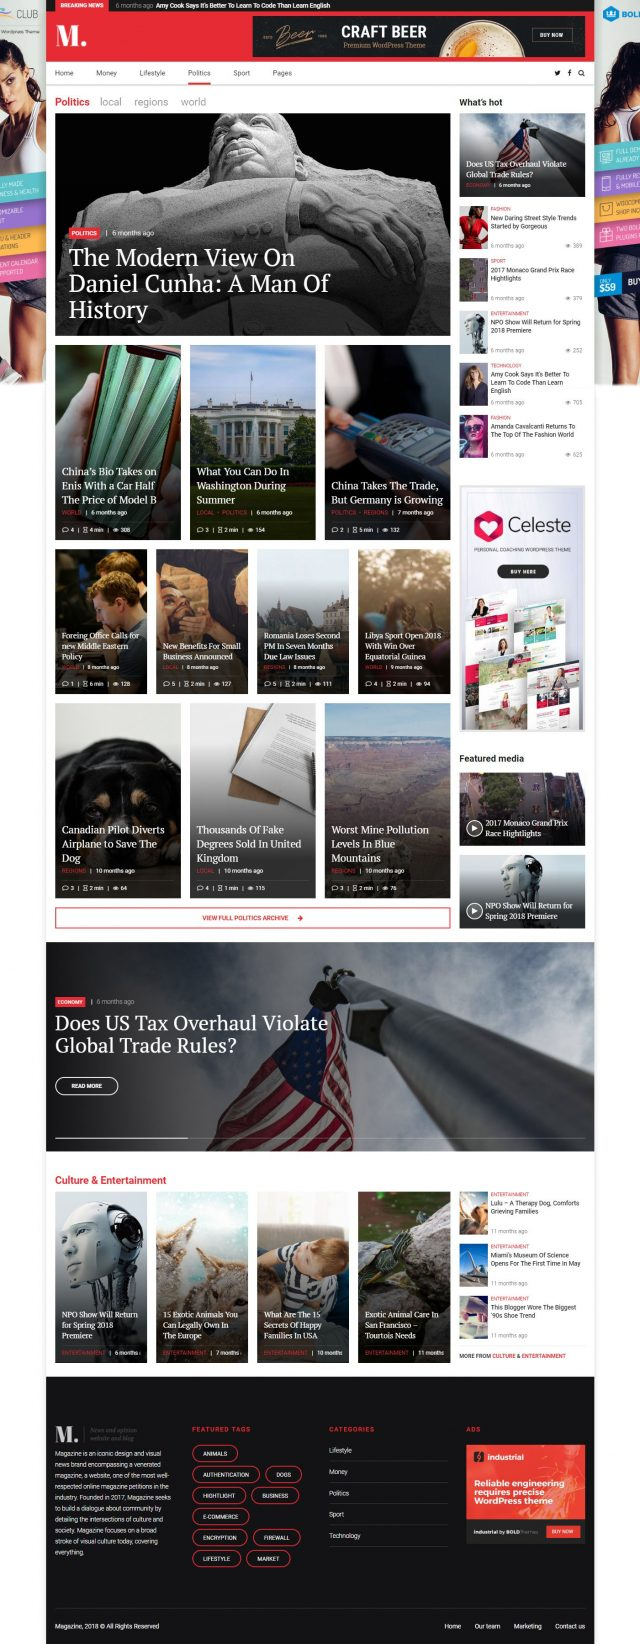 newstar wordpress theme politics magazine homepage layout with banners